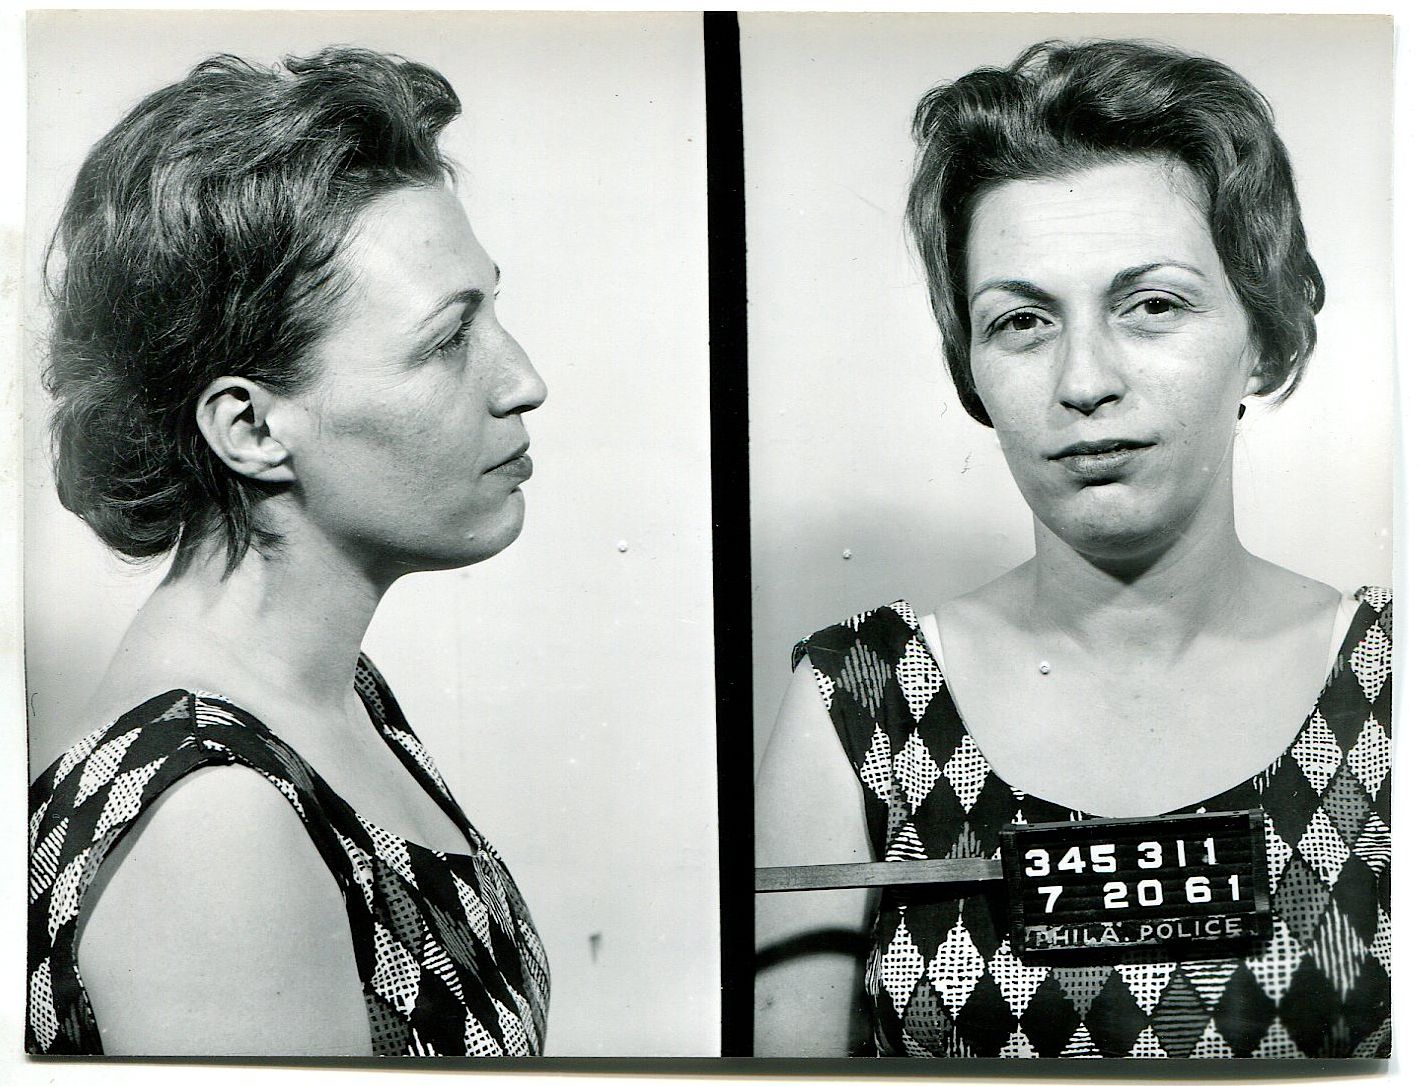 The vintage mugshots of shoplifters bank robbers and murderers from - Vintage Mugshots Women Share